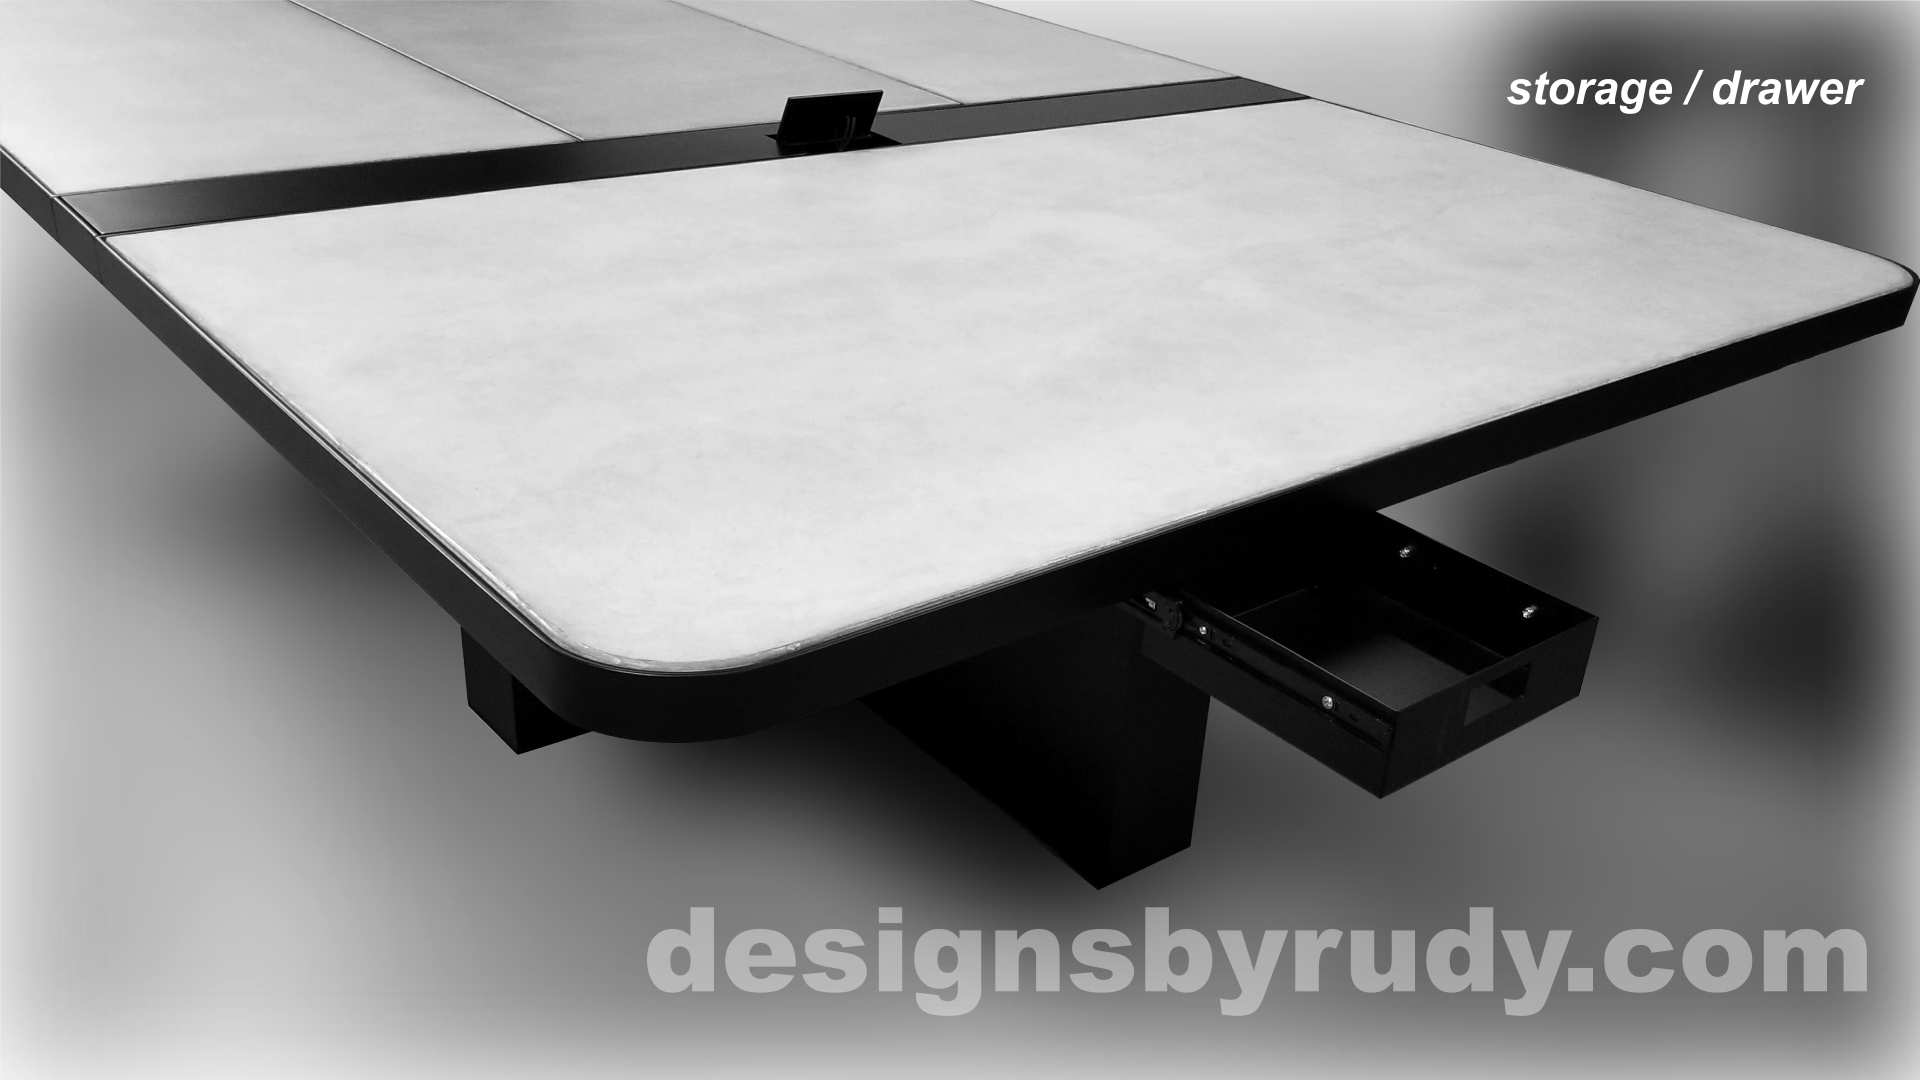 7 Concrete and Steel Conference Room Table for Markforged utility drawer Designs by Rudy